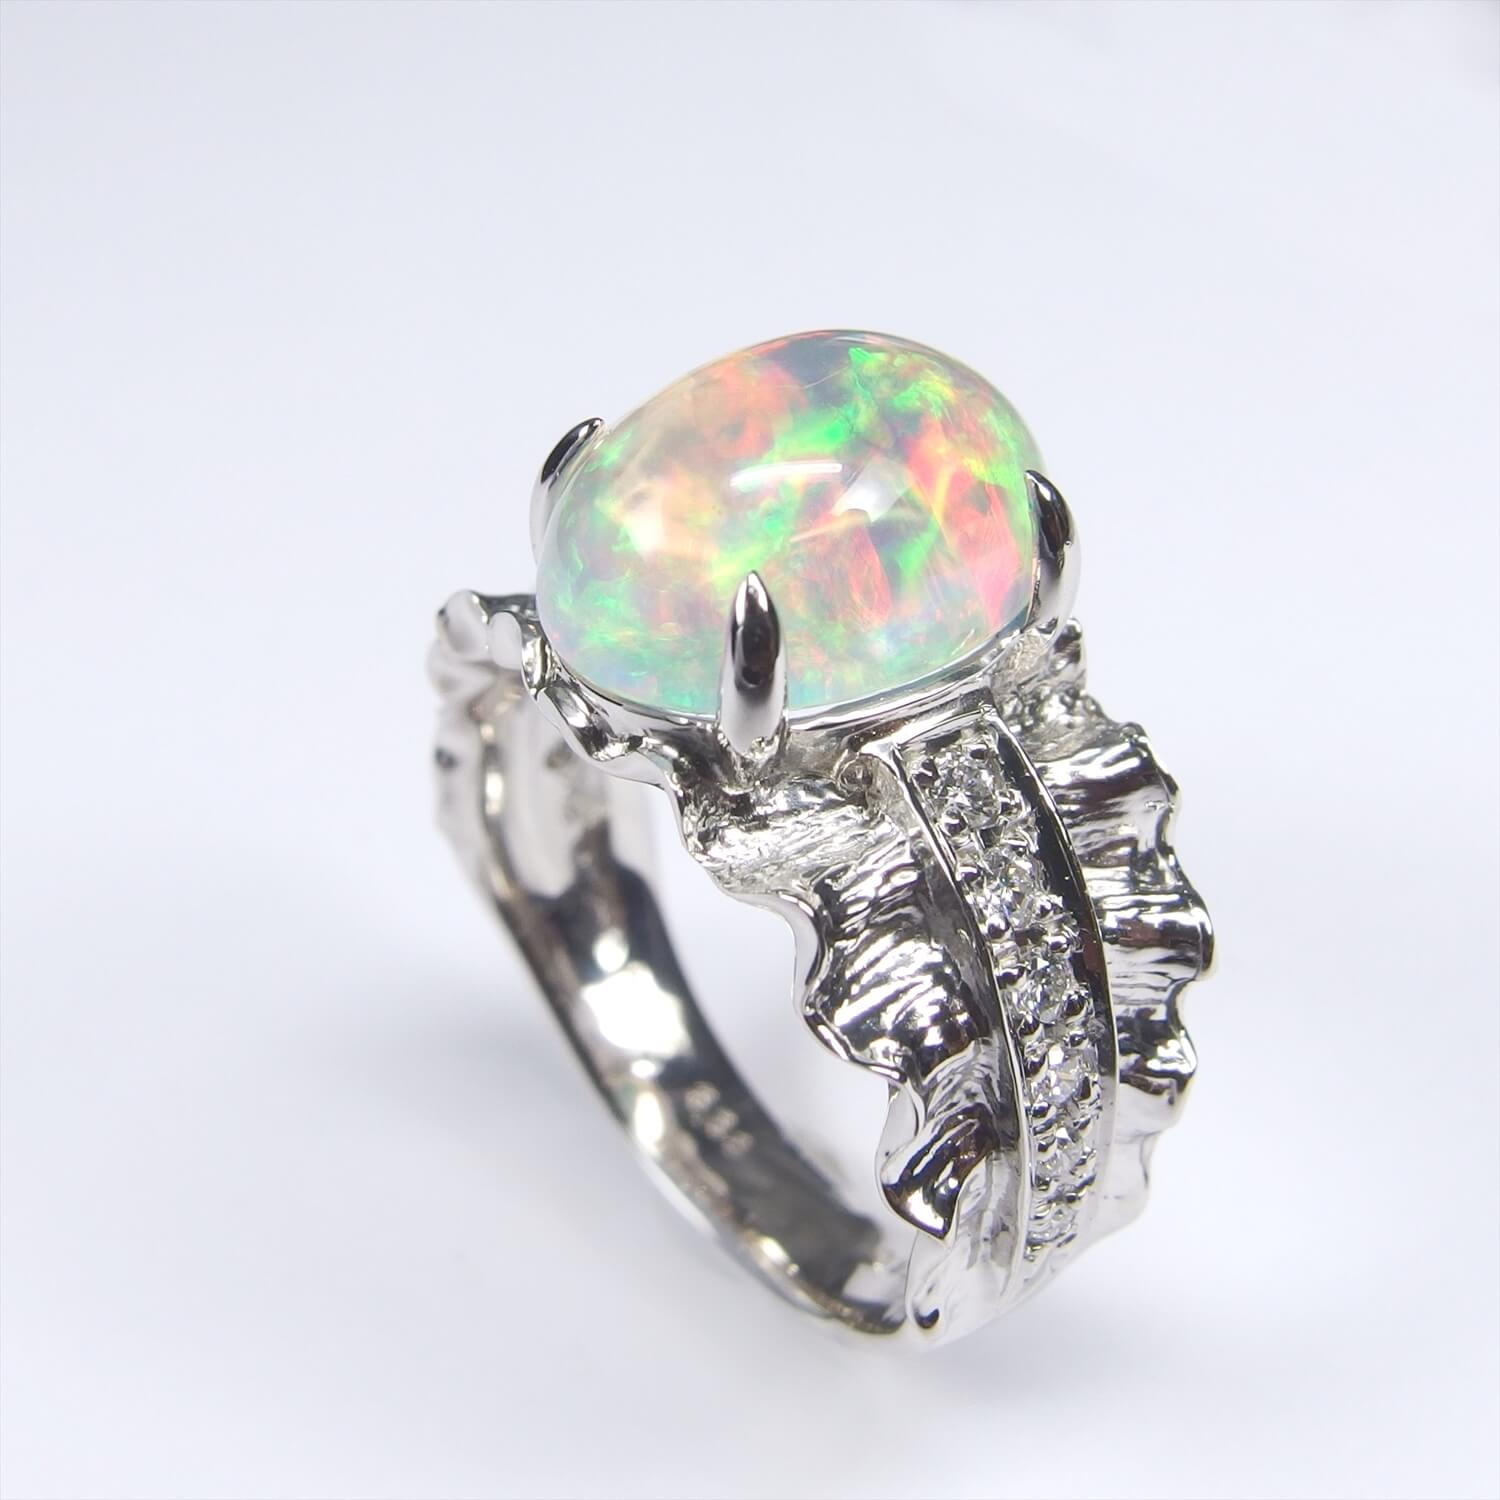 Water Opal Ring